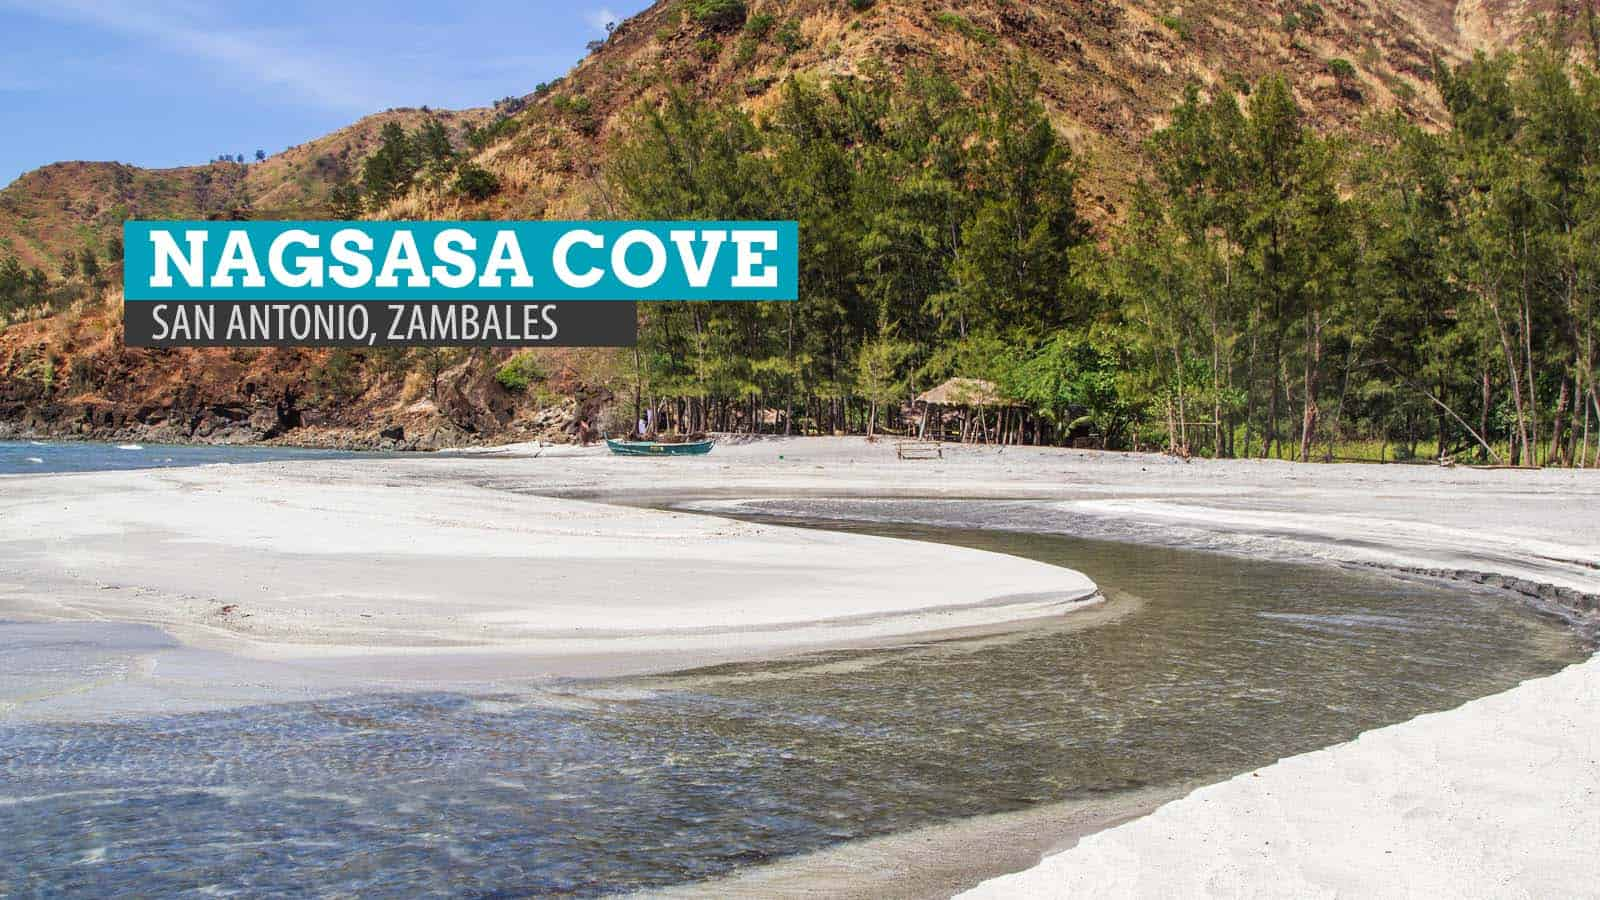 Nagsasa Cove, Zambales: Rising from the Ashes